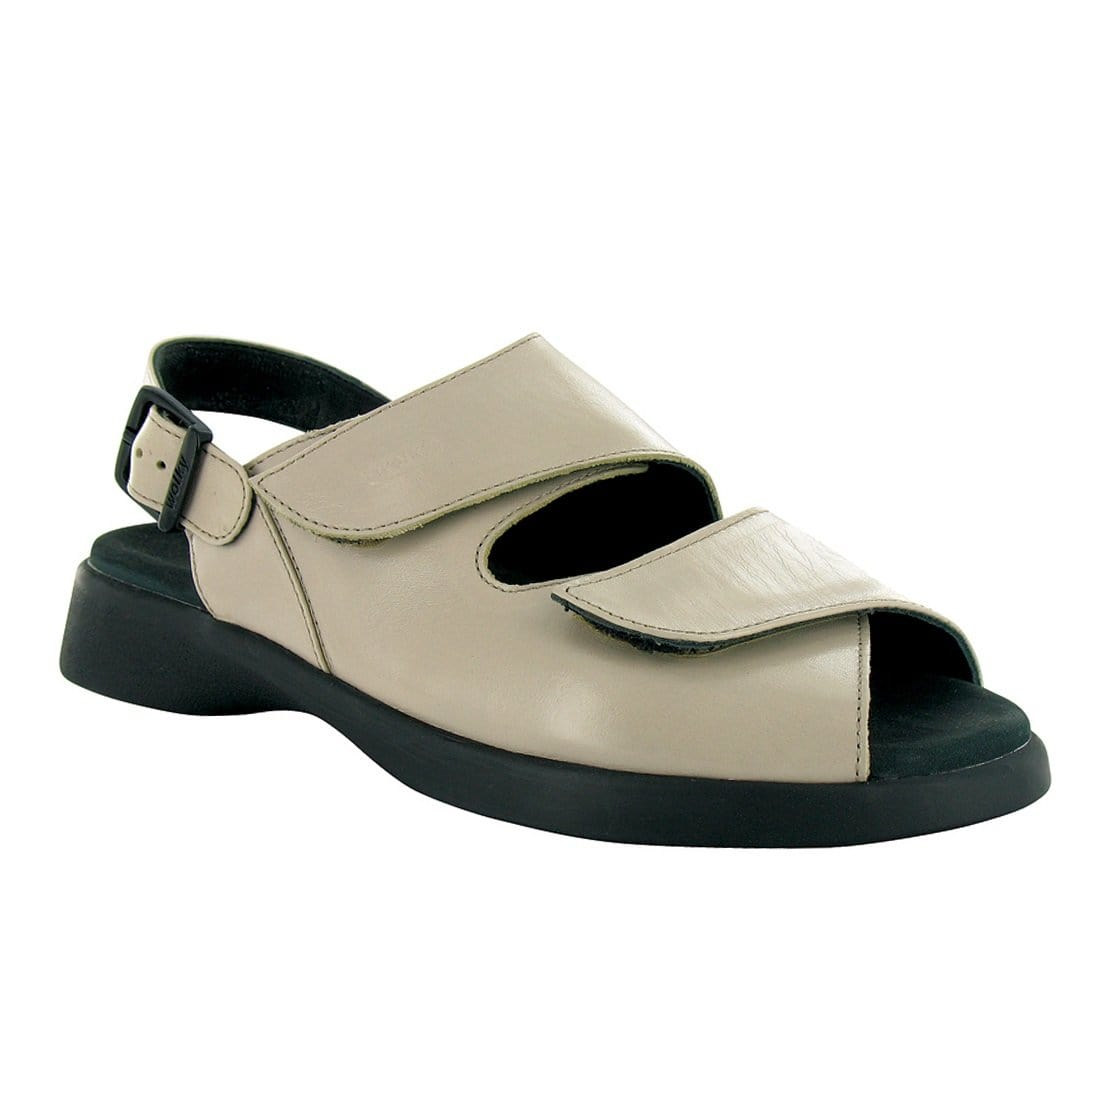 Wolky Nimes 617 | Women's Leather Adjustable Slingback Sandal | Simons